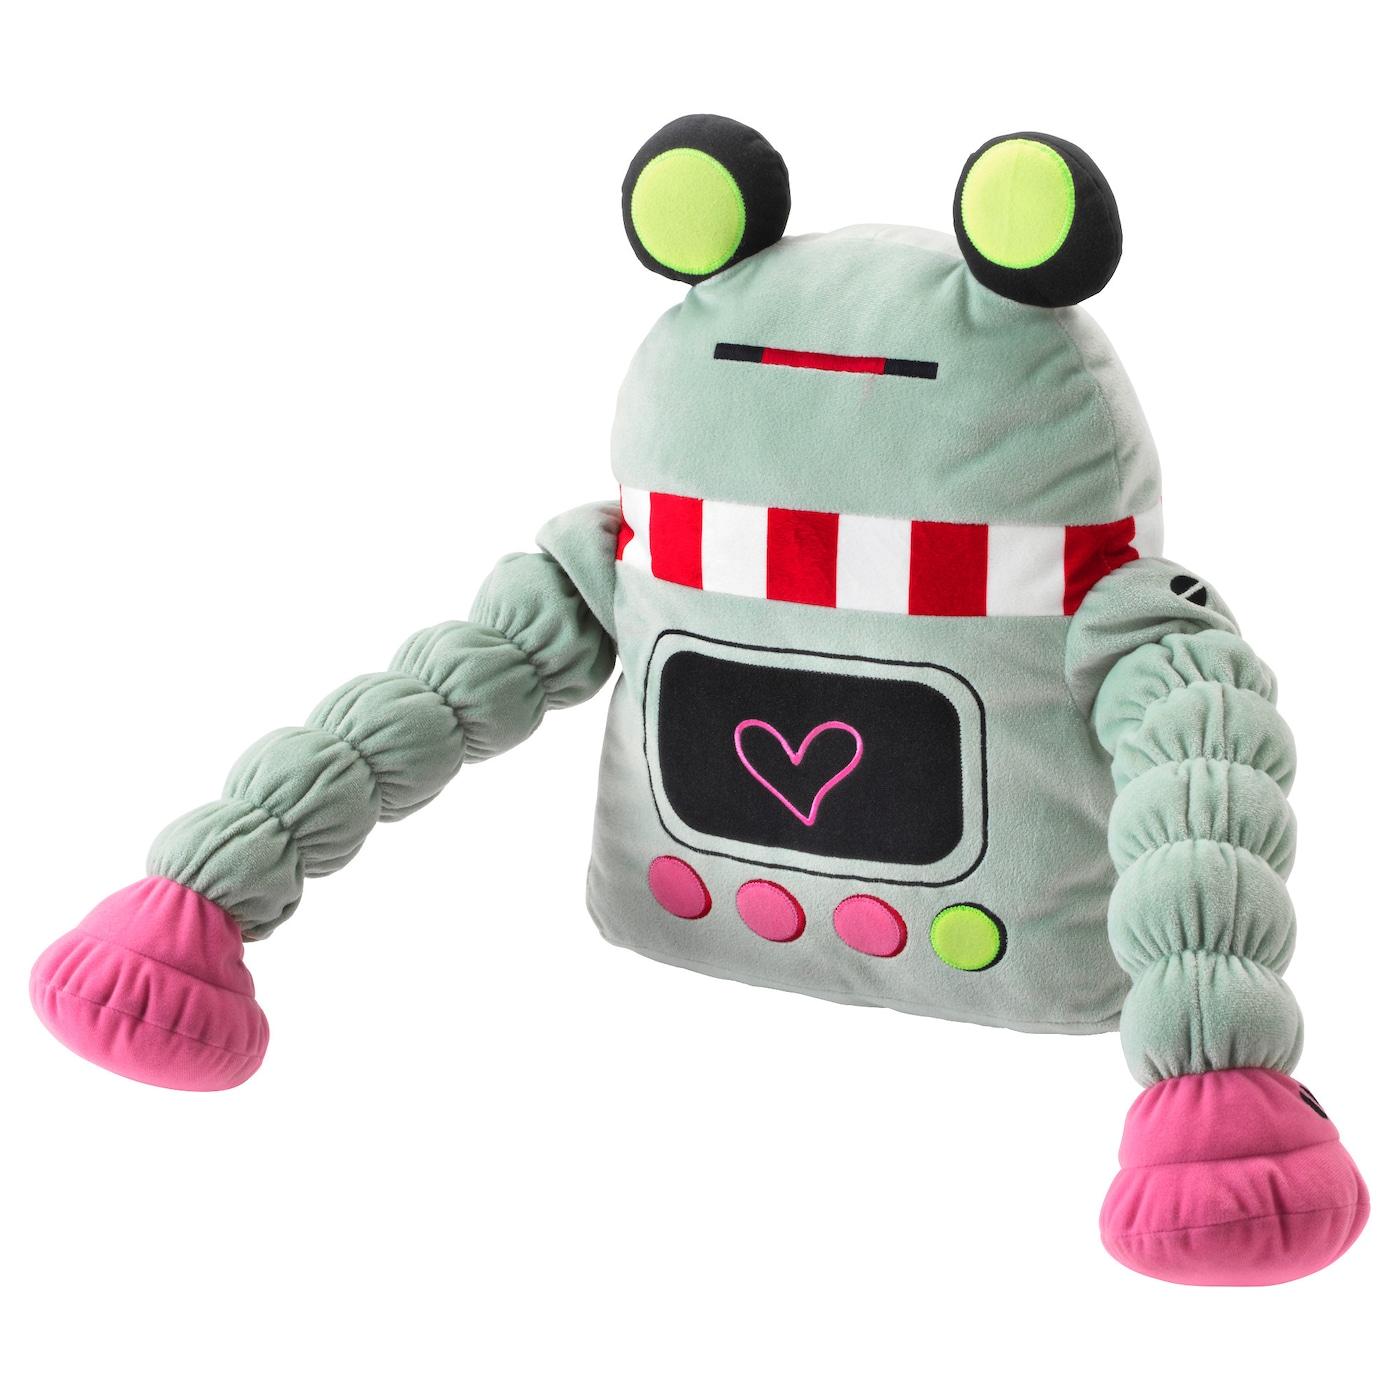 IKEA LATTJO soft toy The soft robot is also nice as a pillow for tired little heads.